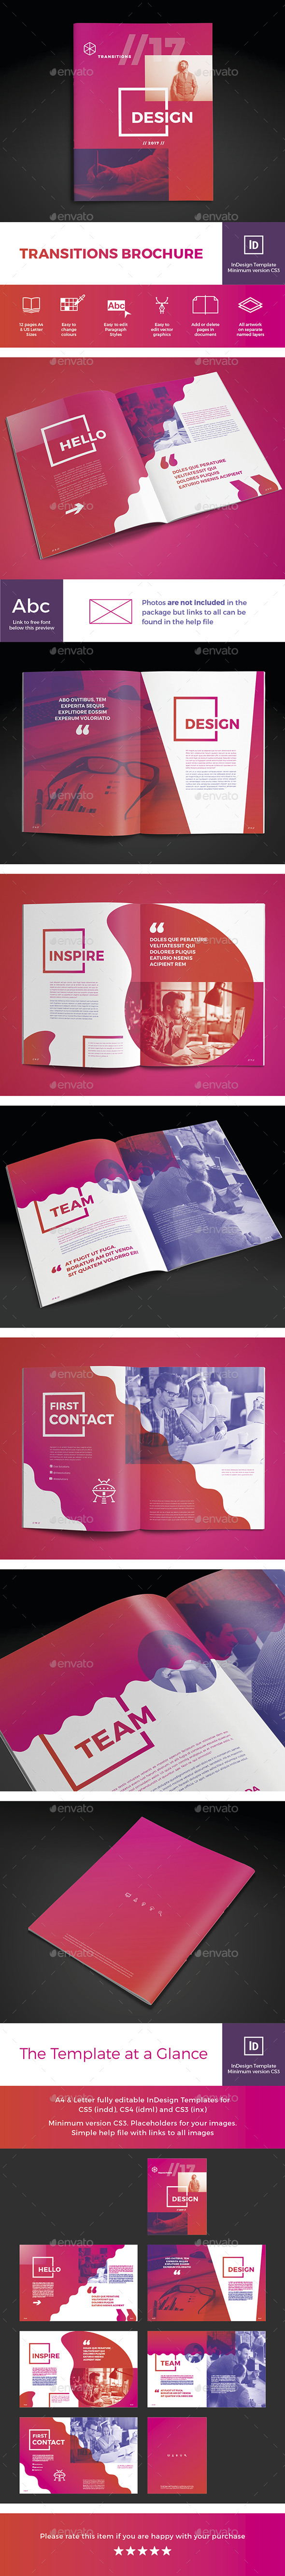 Transitions Brochure - Brochures Print Templates